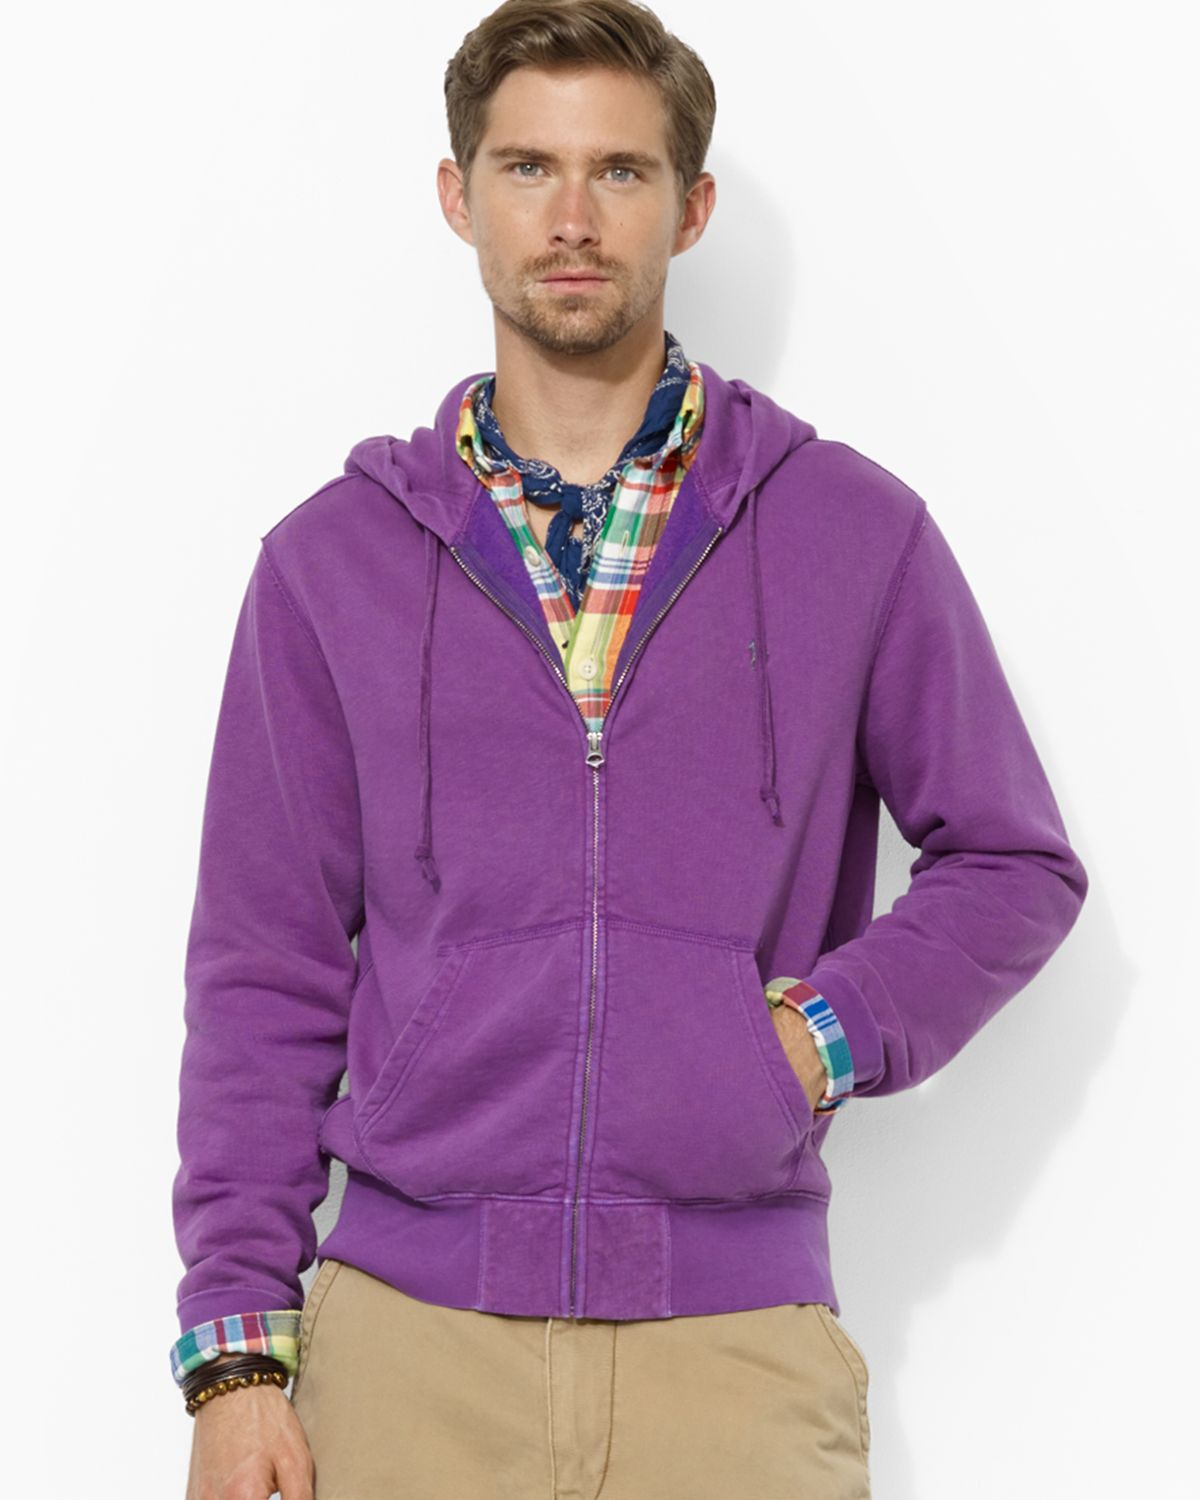 ralph lauren polo fullzip fleece hoodie in purple for men lyst. Black Bedroom Furniture Sets. Home Design Ideas